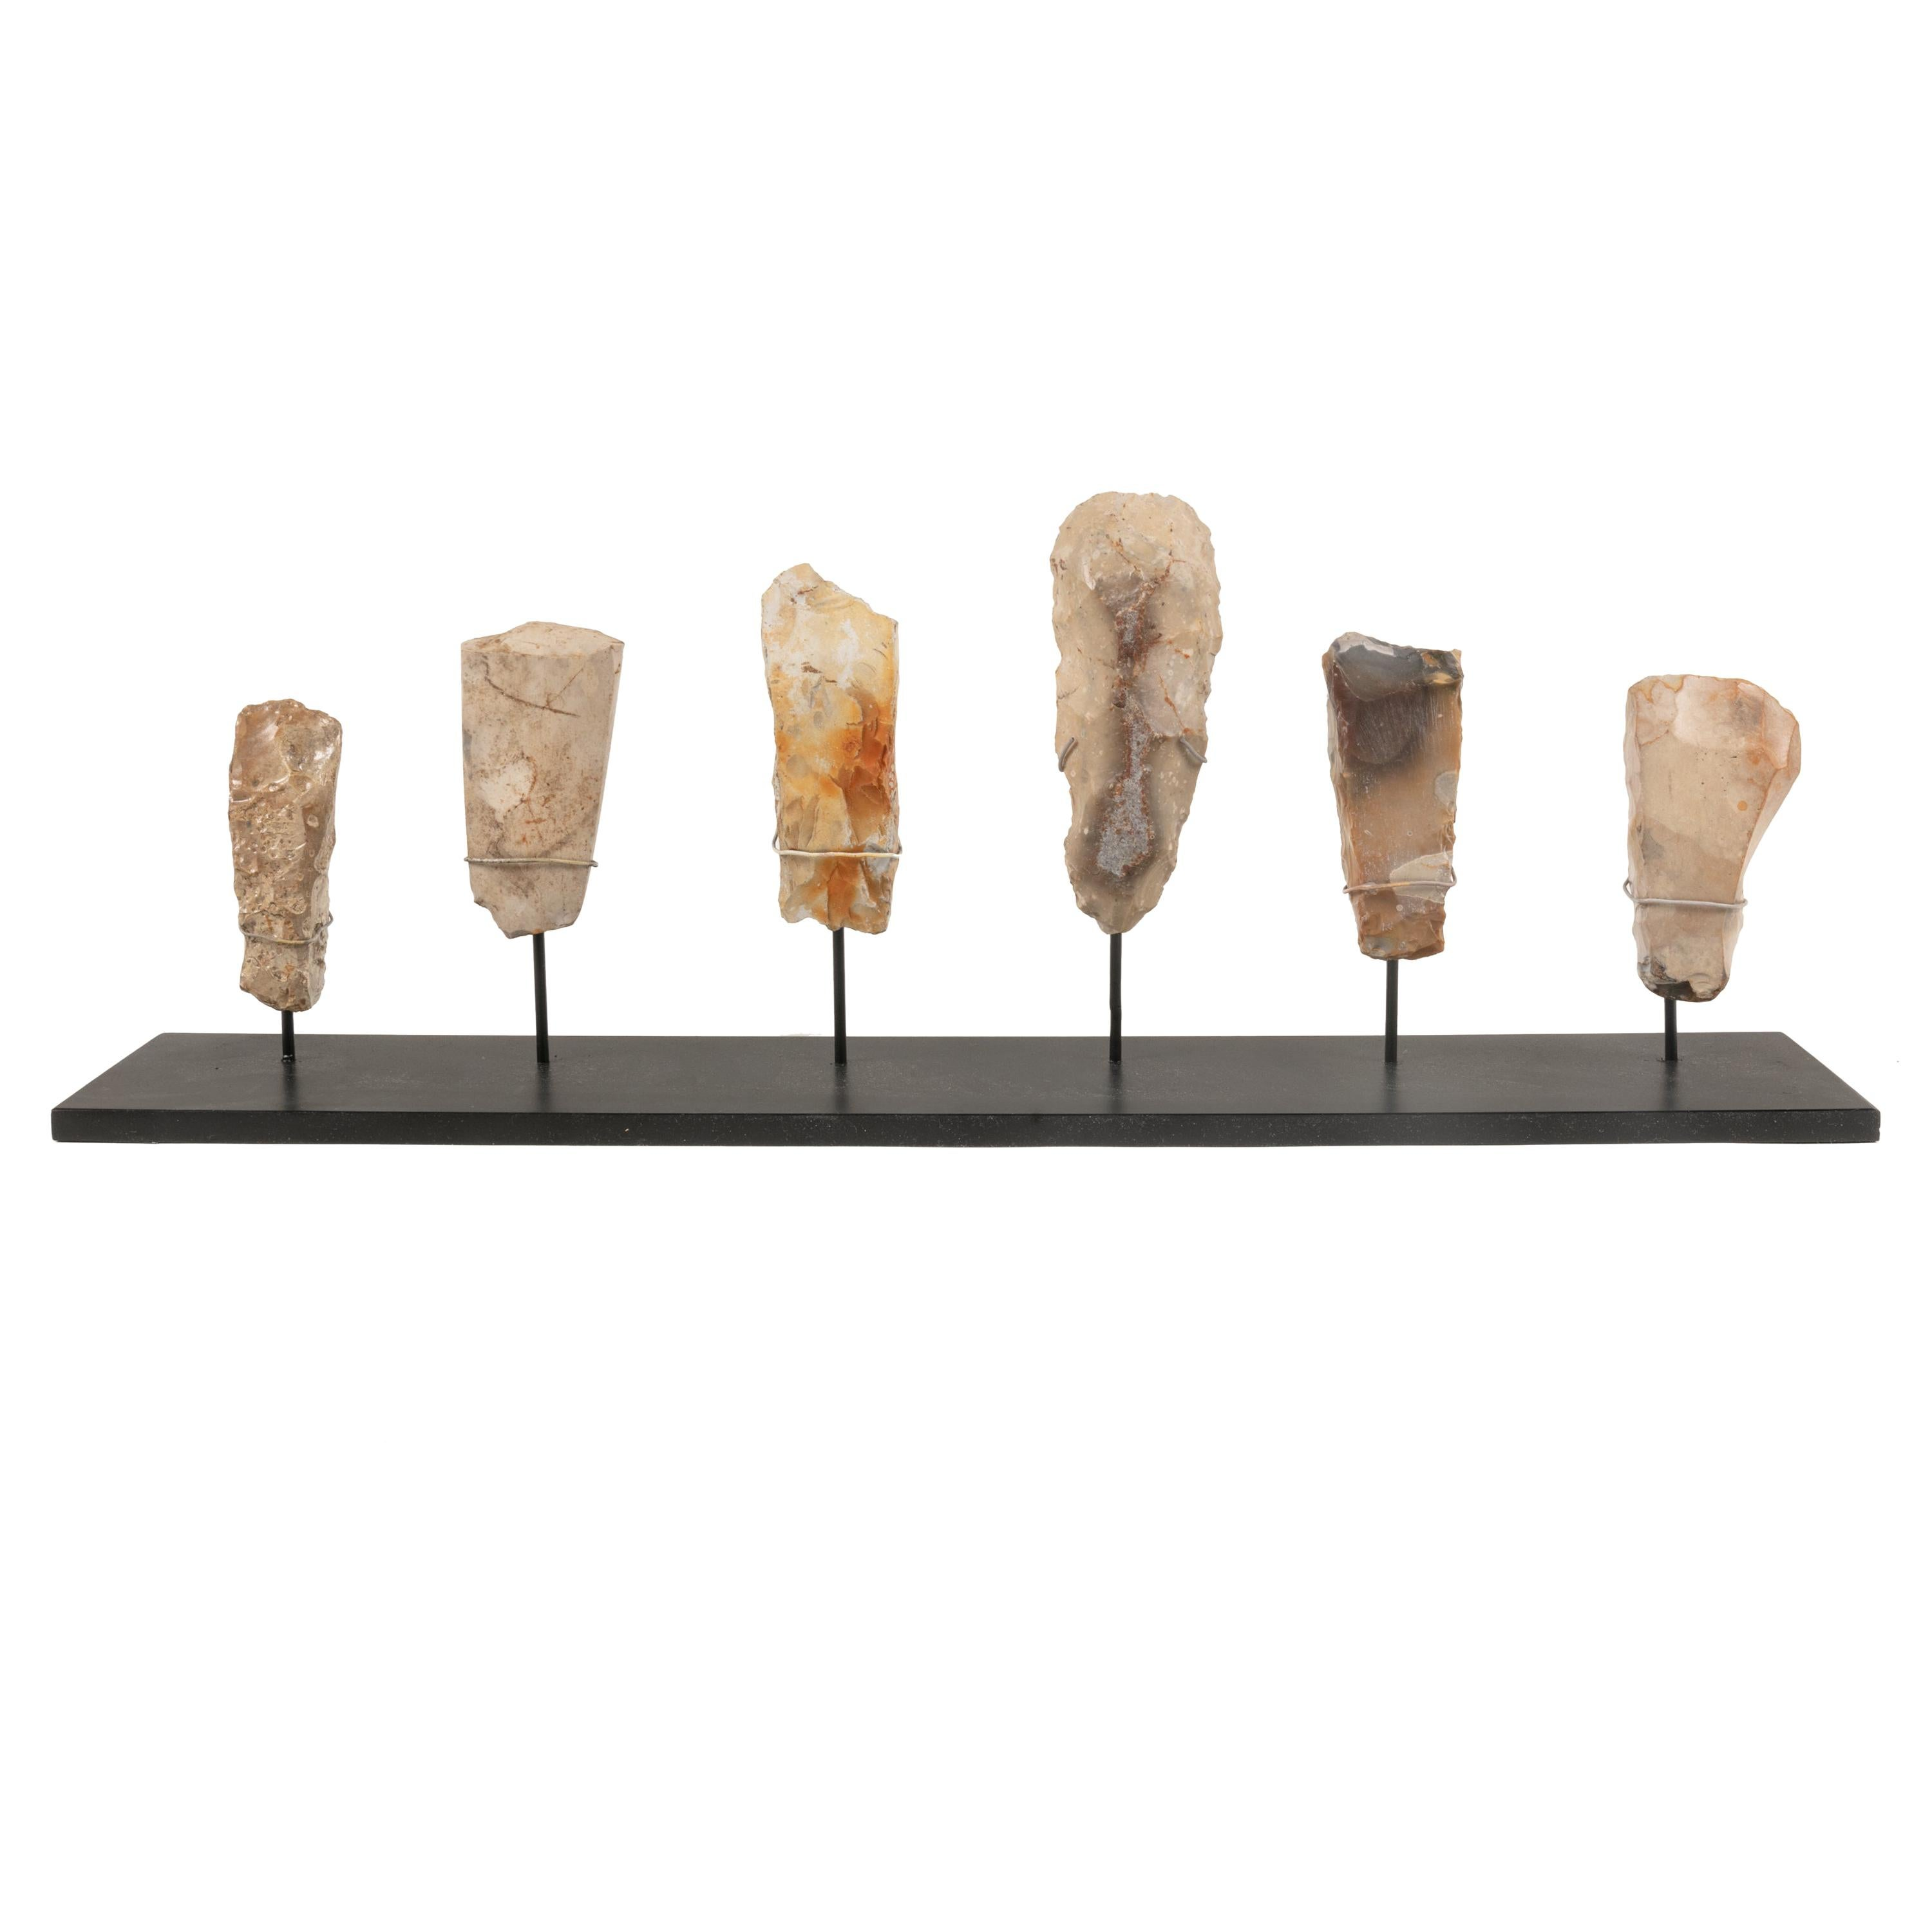 Collection of Neolithic Flint Stone Tools, Scandinavia 1900 BC